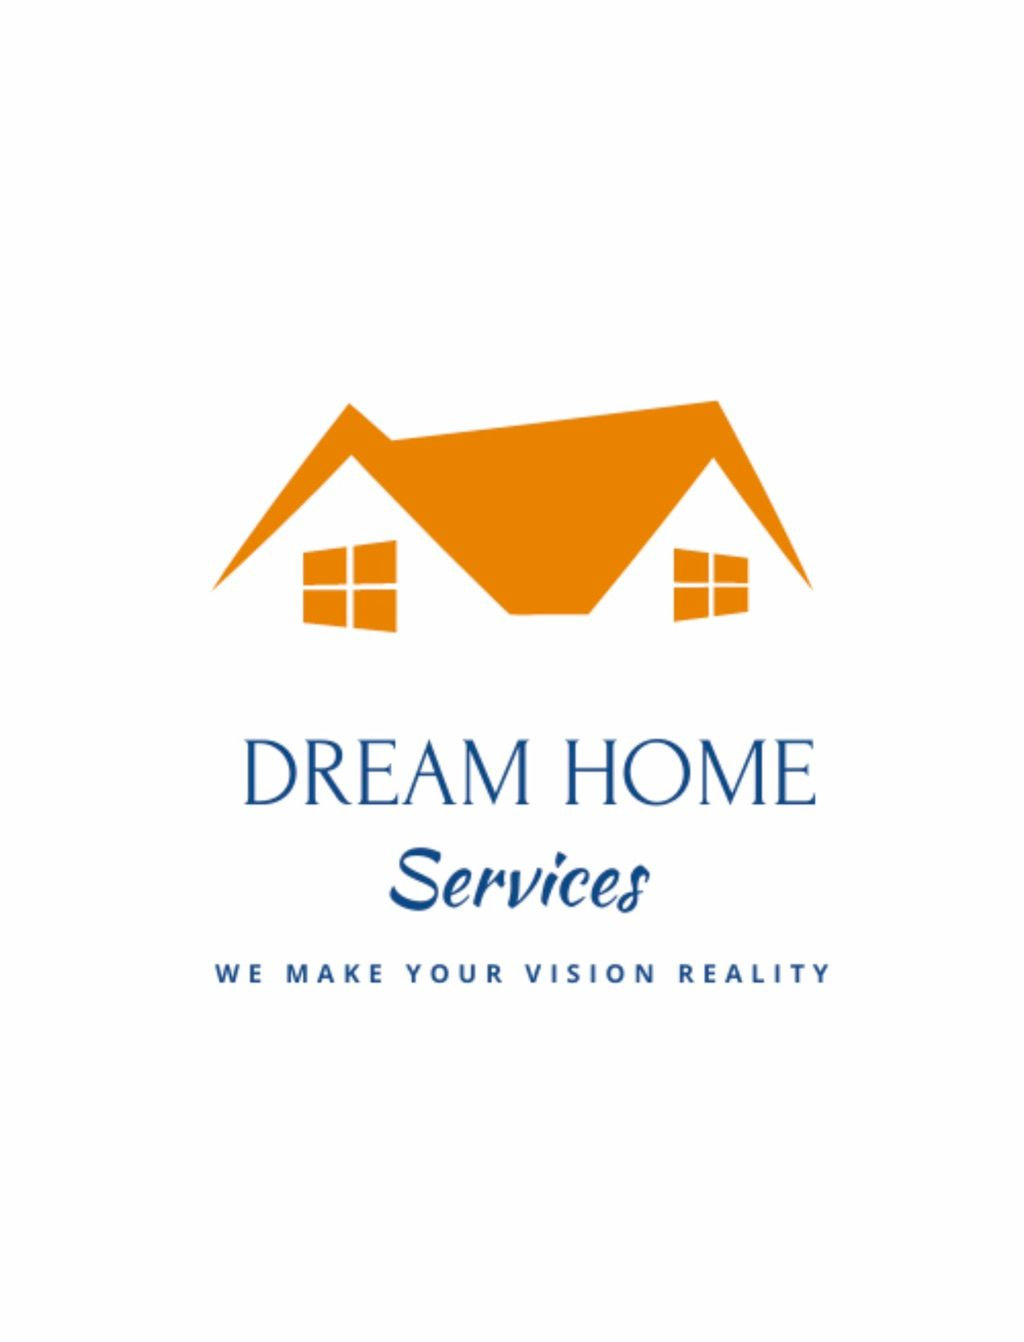 Juan Sanchez (Dream Home Services)